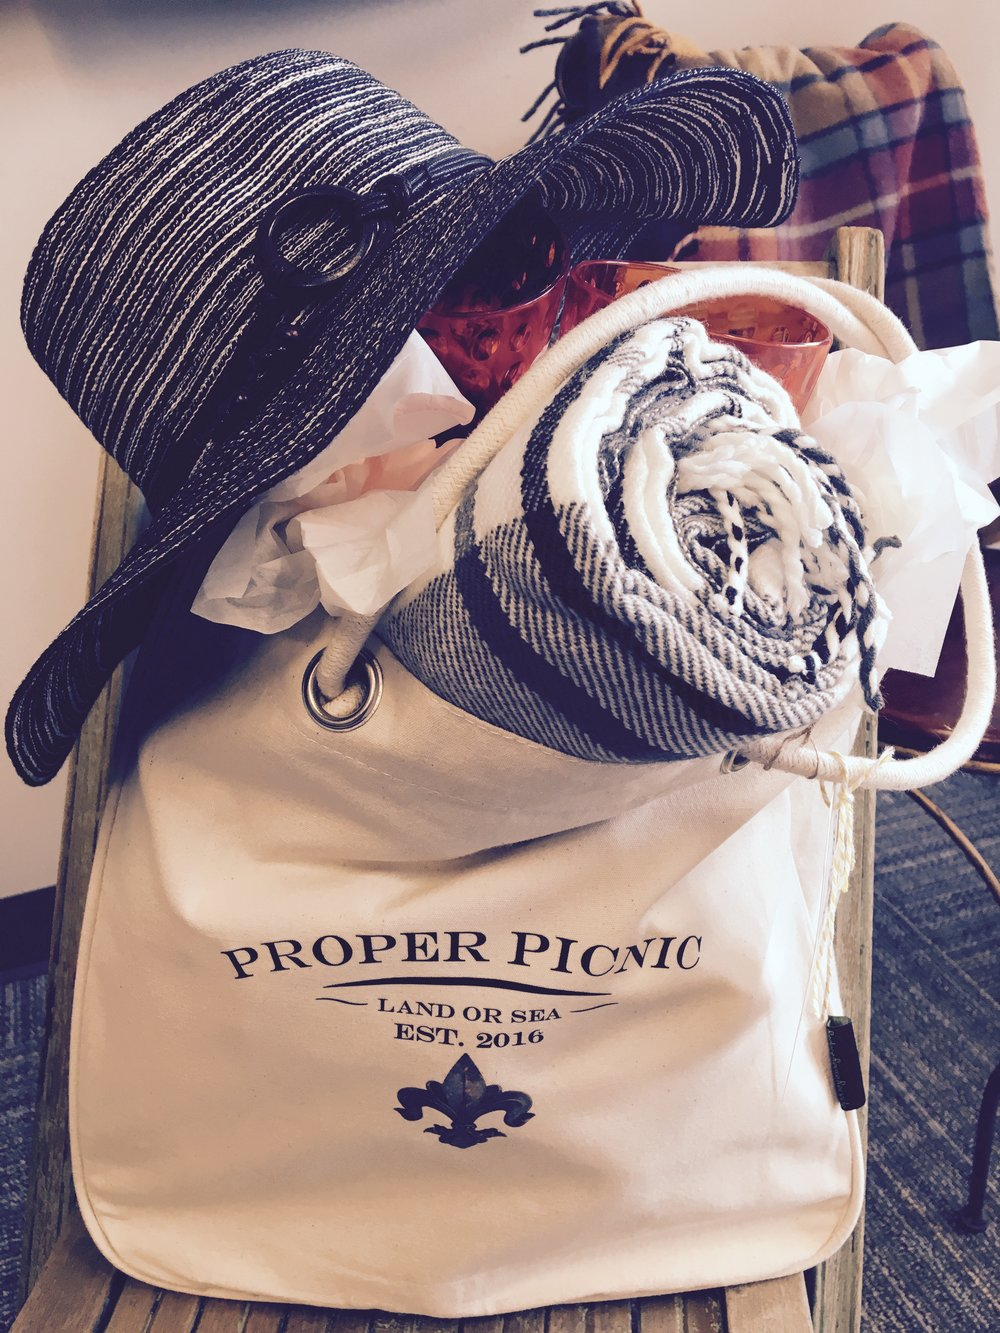 our custom canvas tote, with hat & blanket make a beautiful gift.  Check out other gift ideas here.